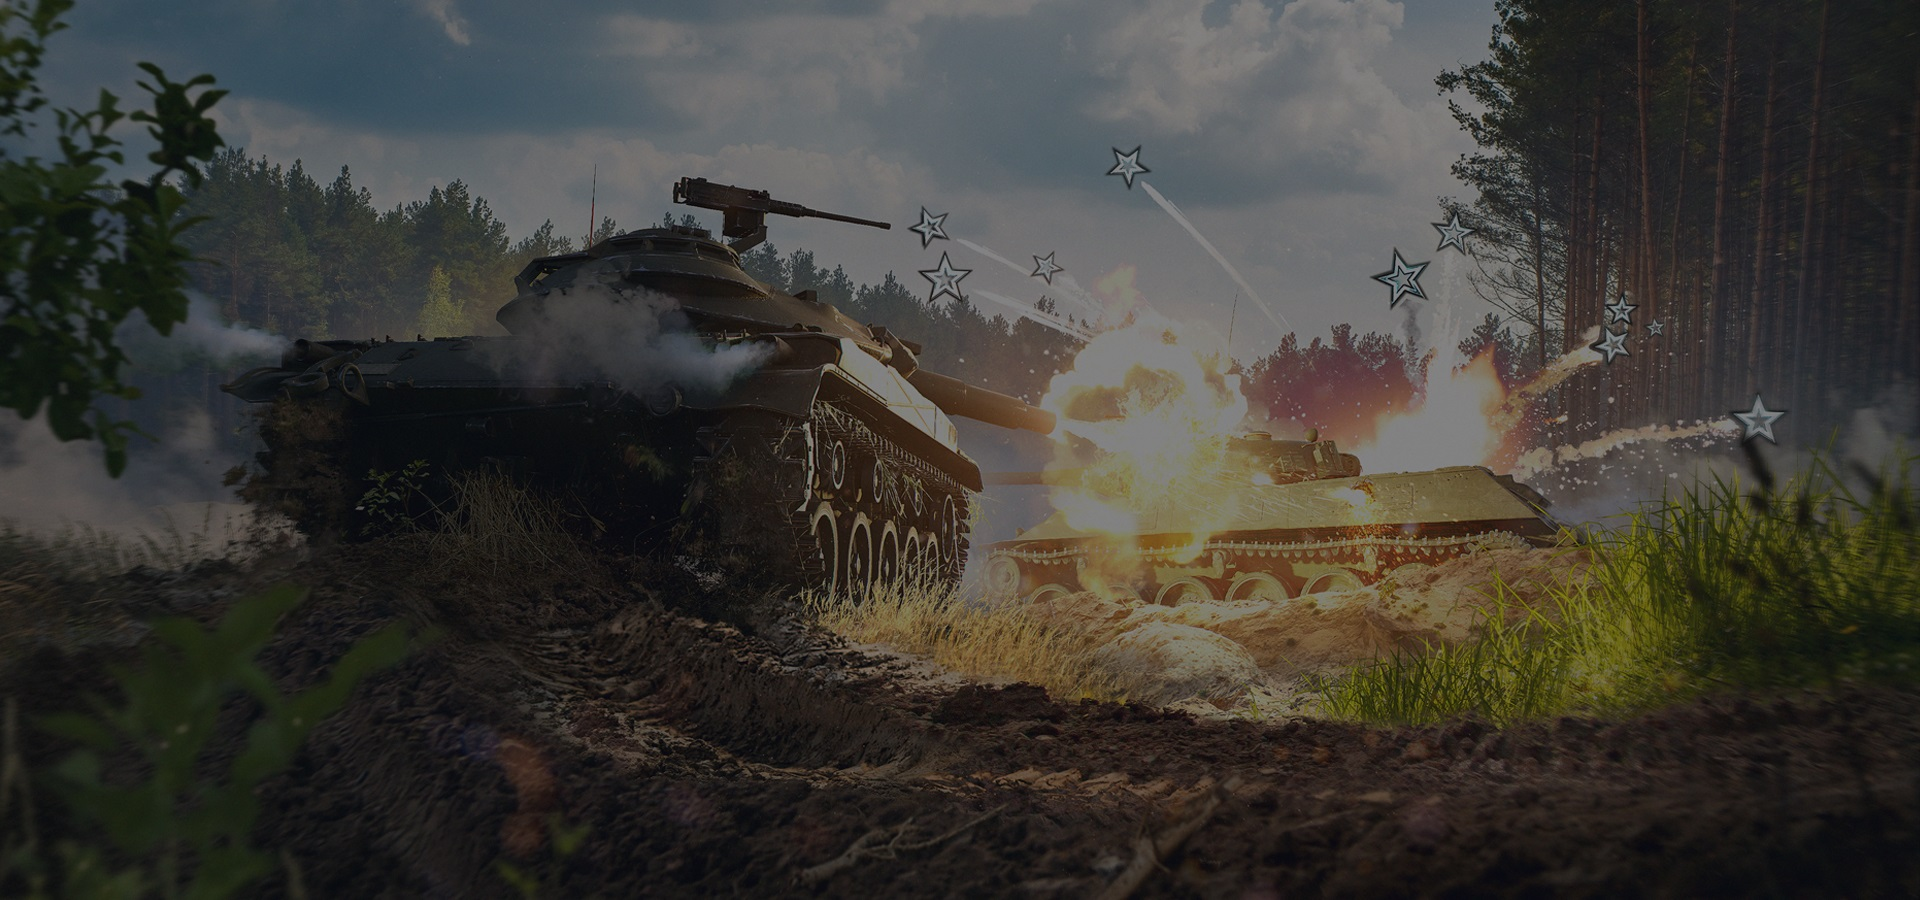 wot-pc_new-artwork-xp-specials_1920x900